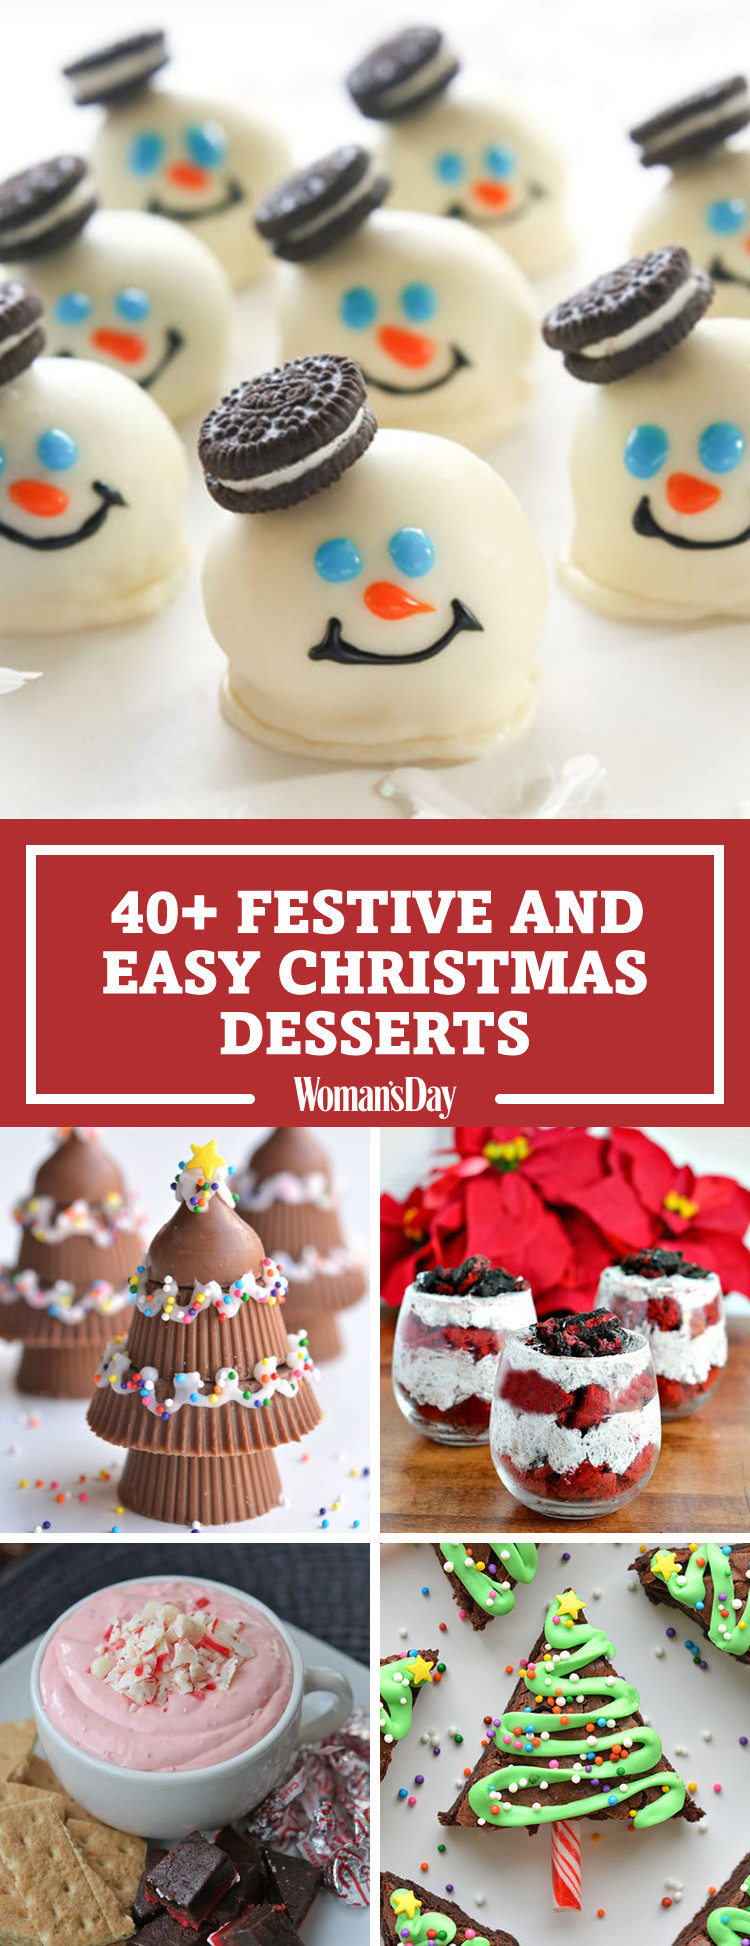 Quick Christmas Desserts  57 Easy Christmas Dessert Recipes Best Ideas for Fun